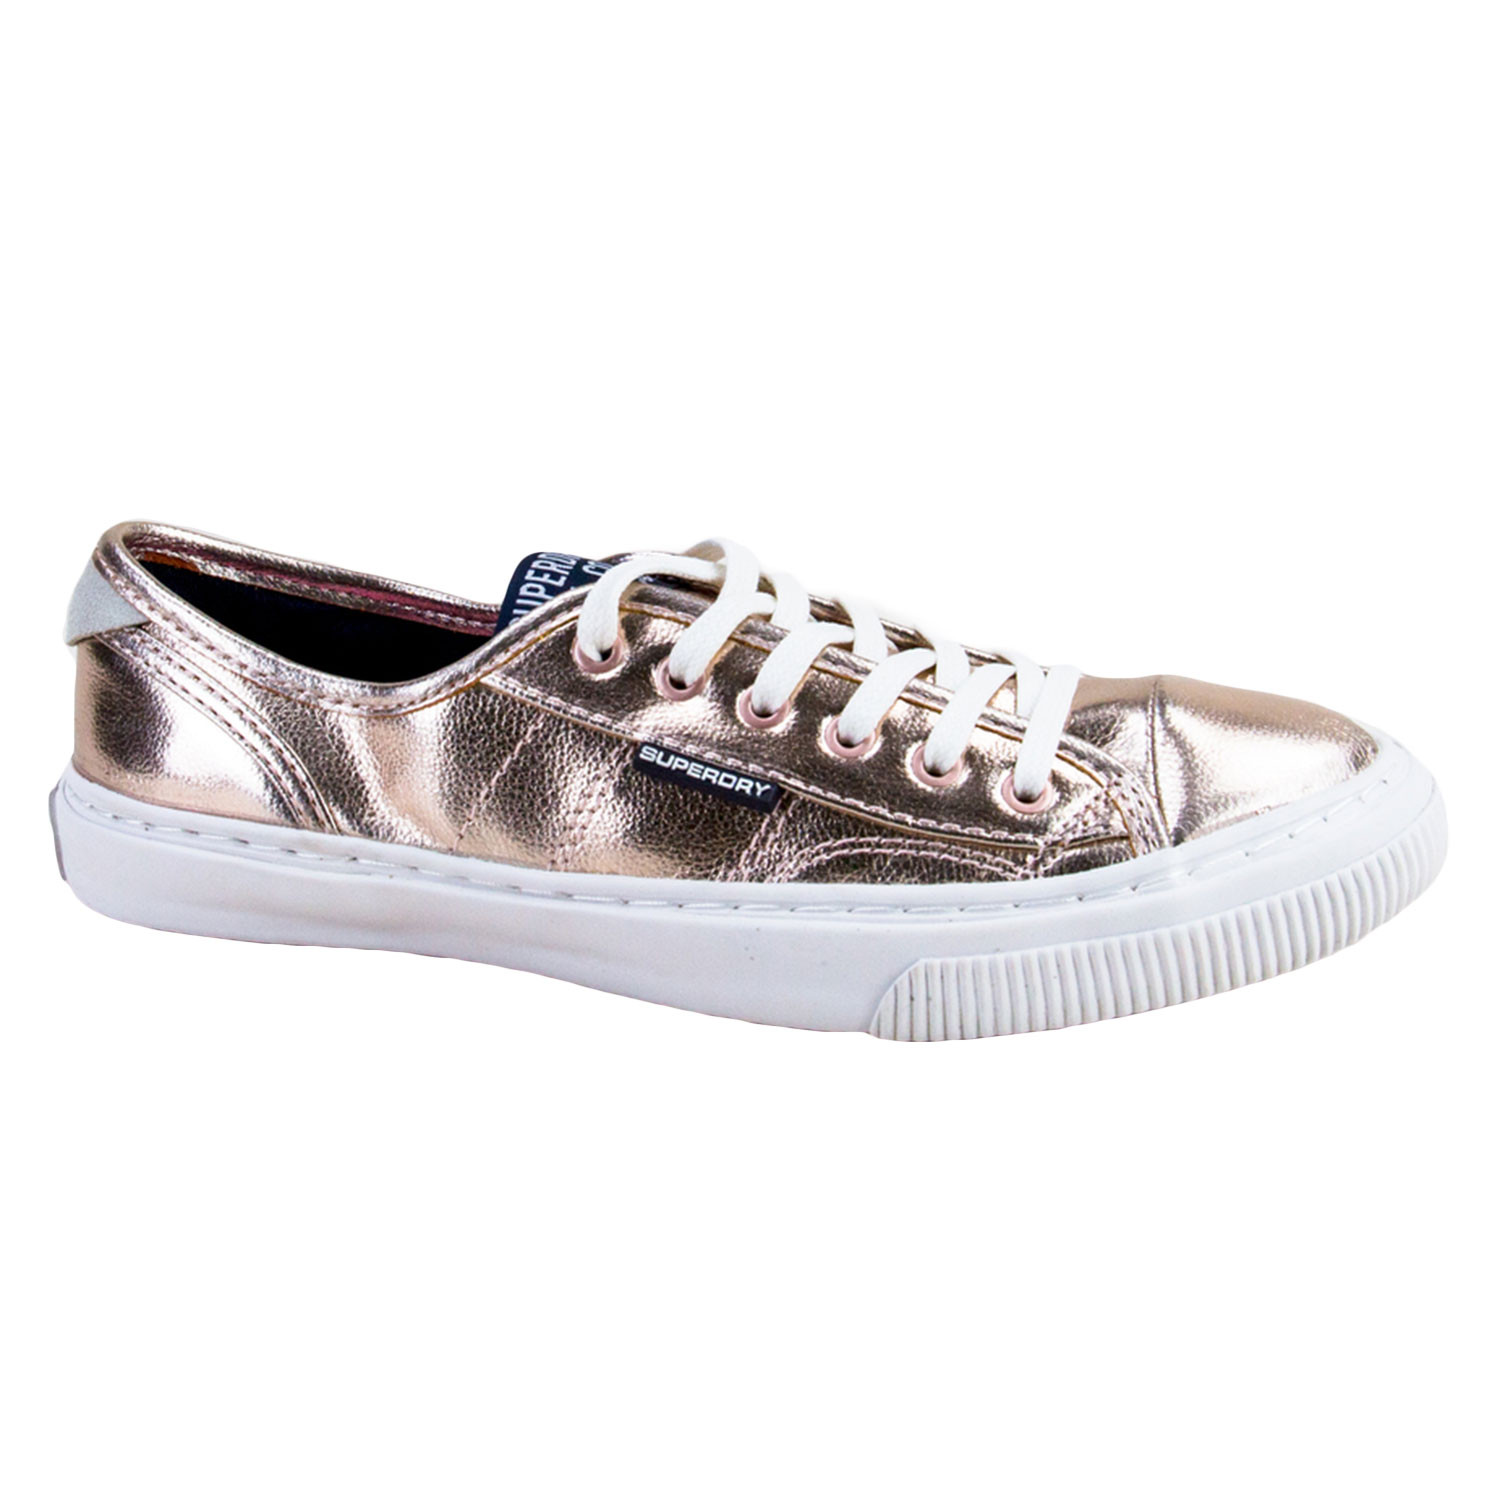 College Low Pro Sneaker Chaussure Femme